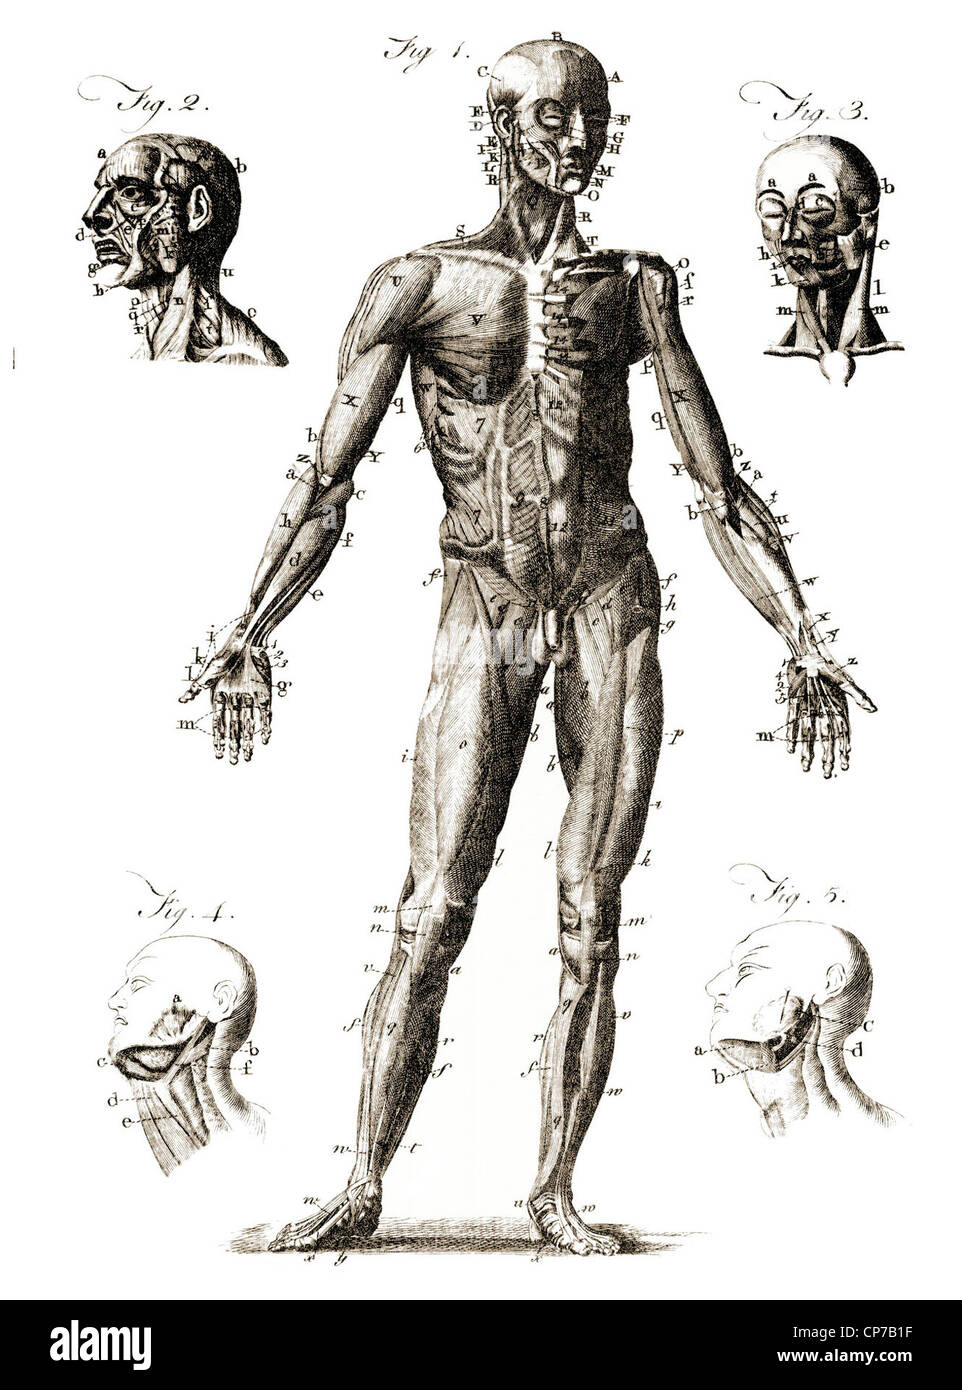 medium resolution of diagram showing labeled human anatomy published by unknown engraver in encyclopedia britannica 1771